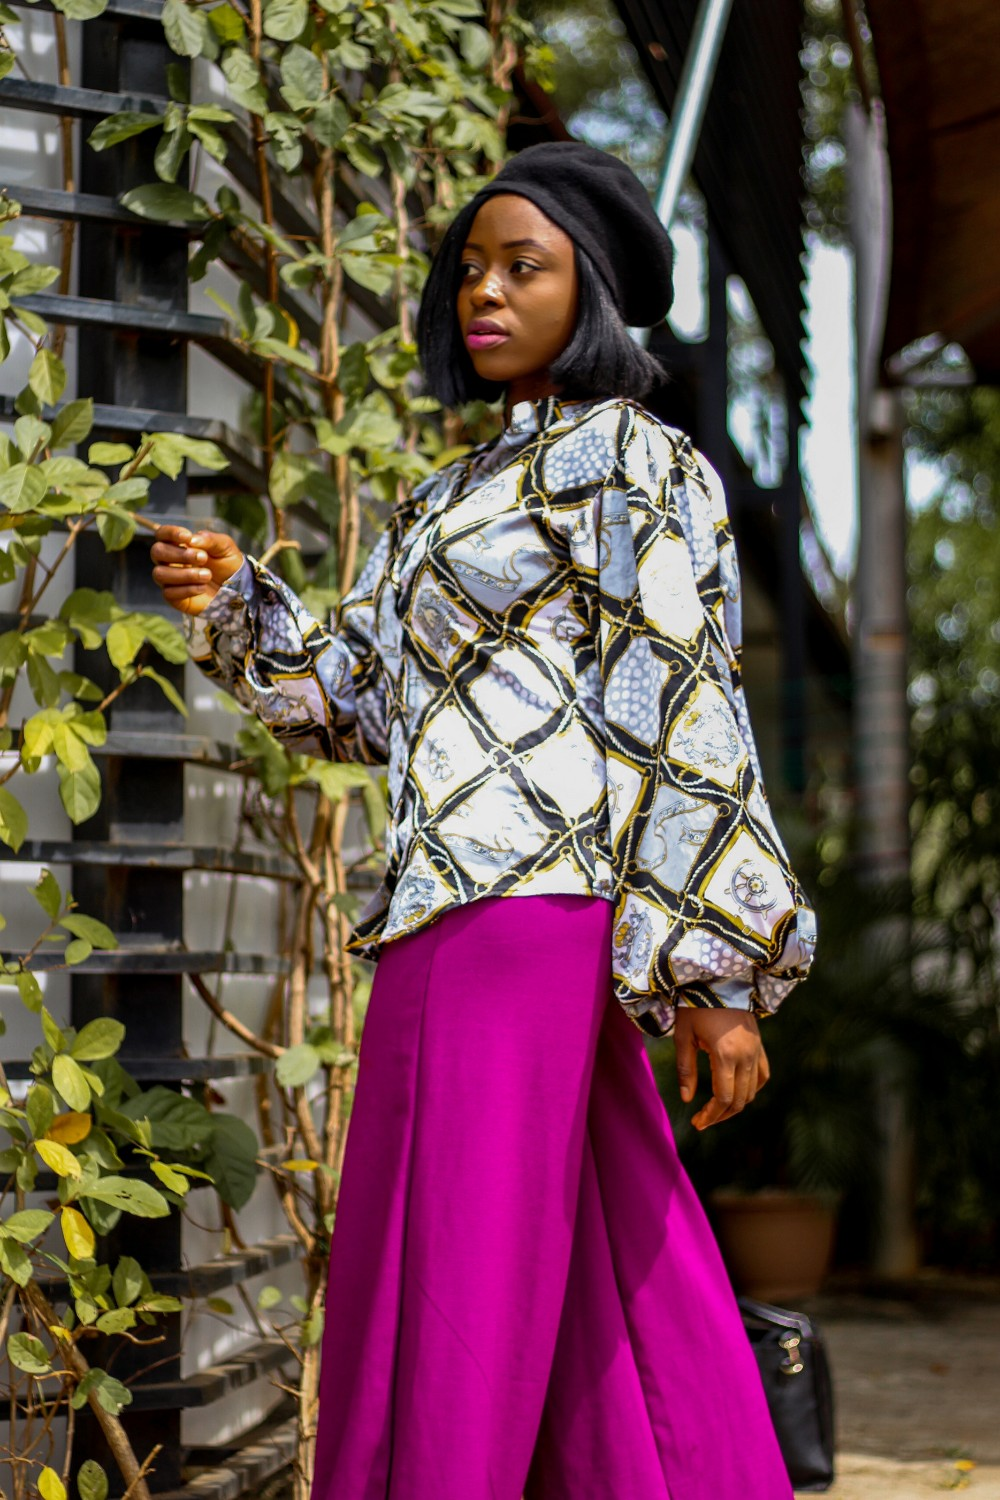 abuja blogger princess audu styles dramatic sleeve vintage top